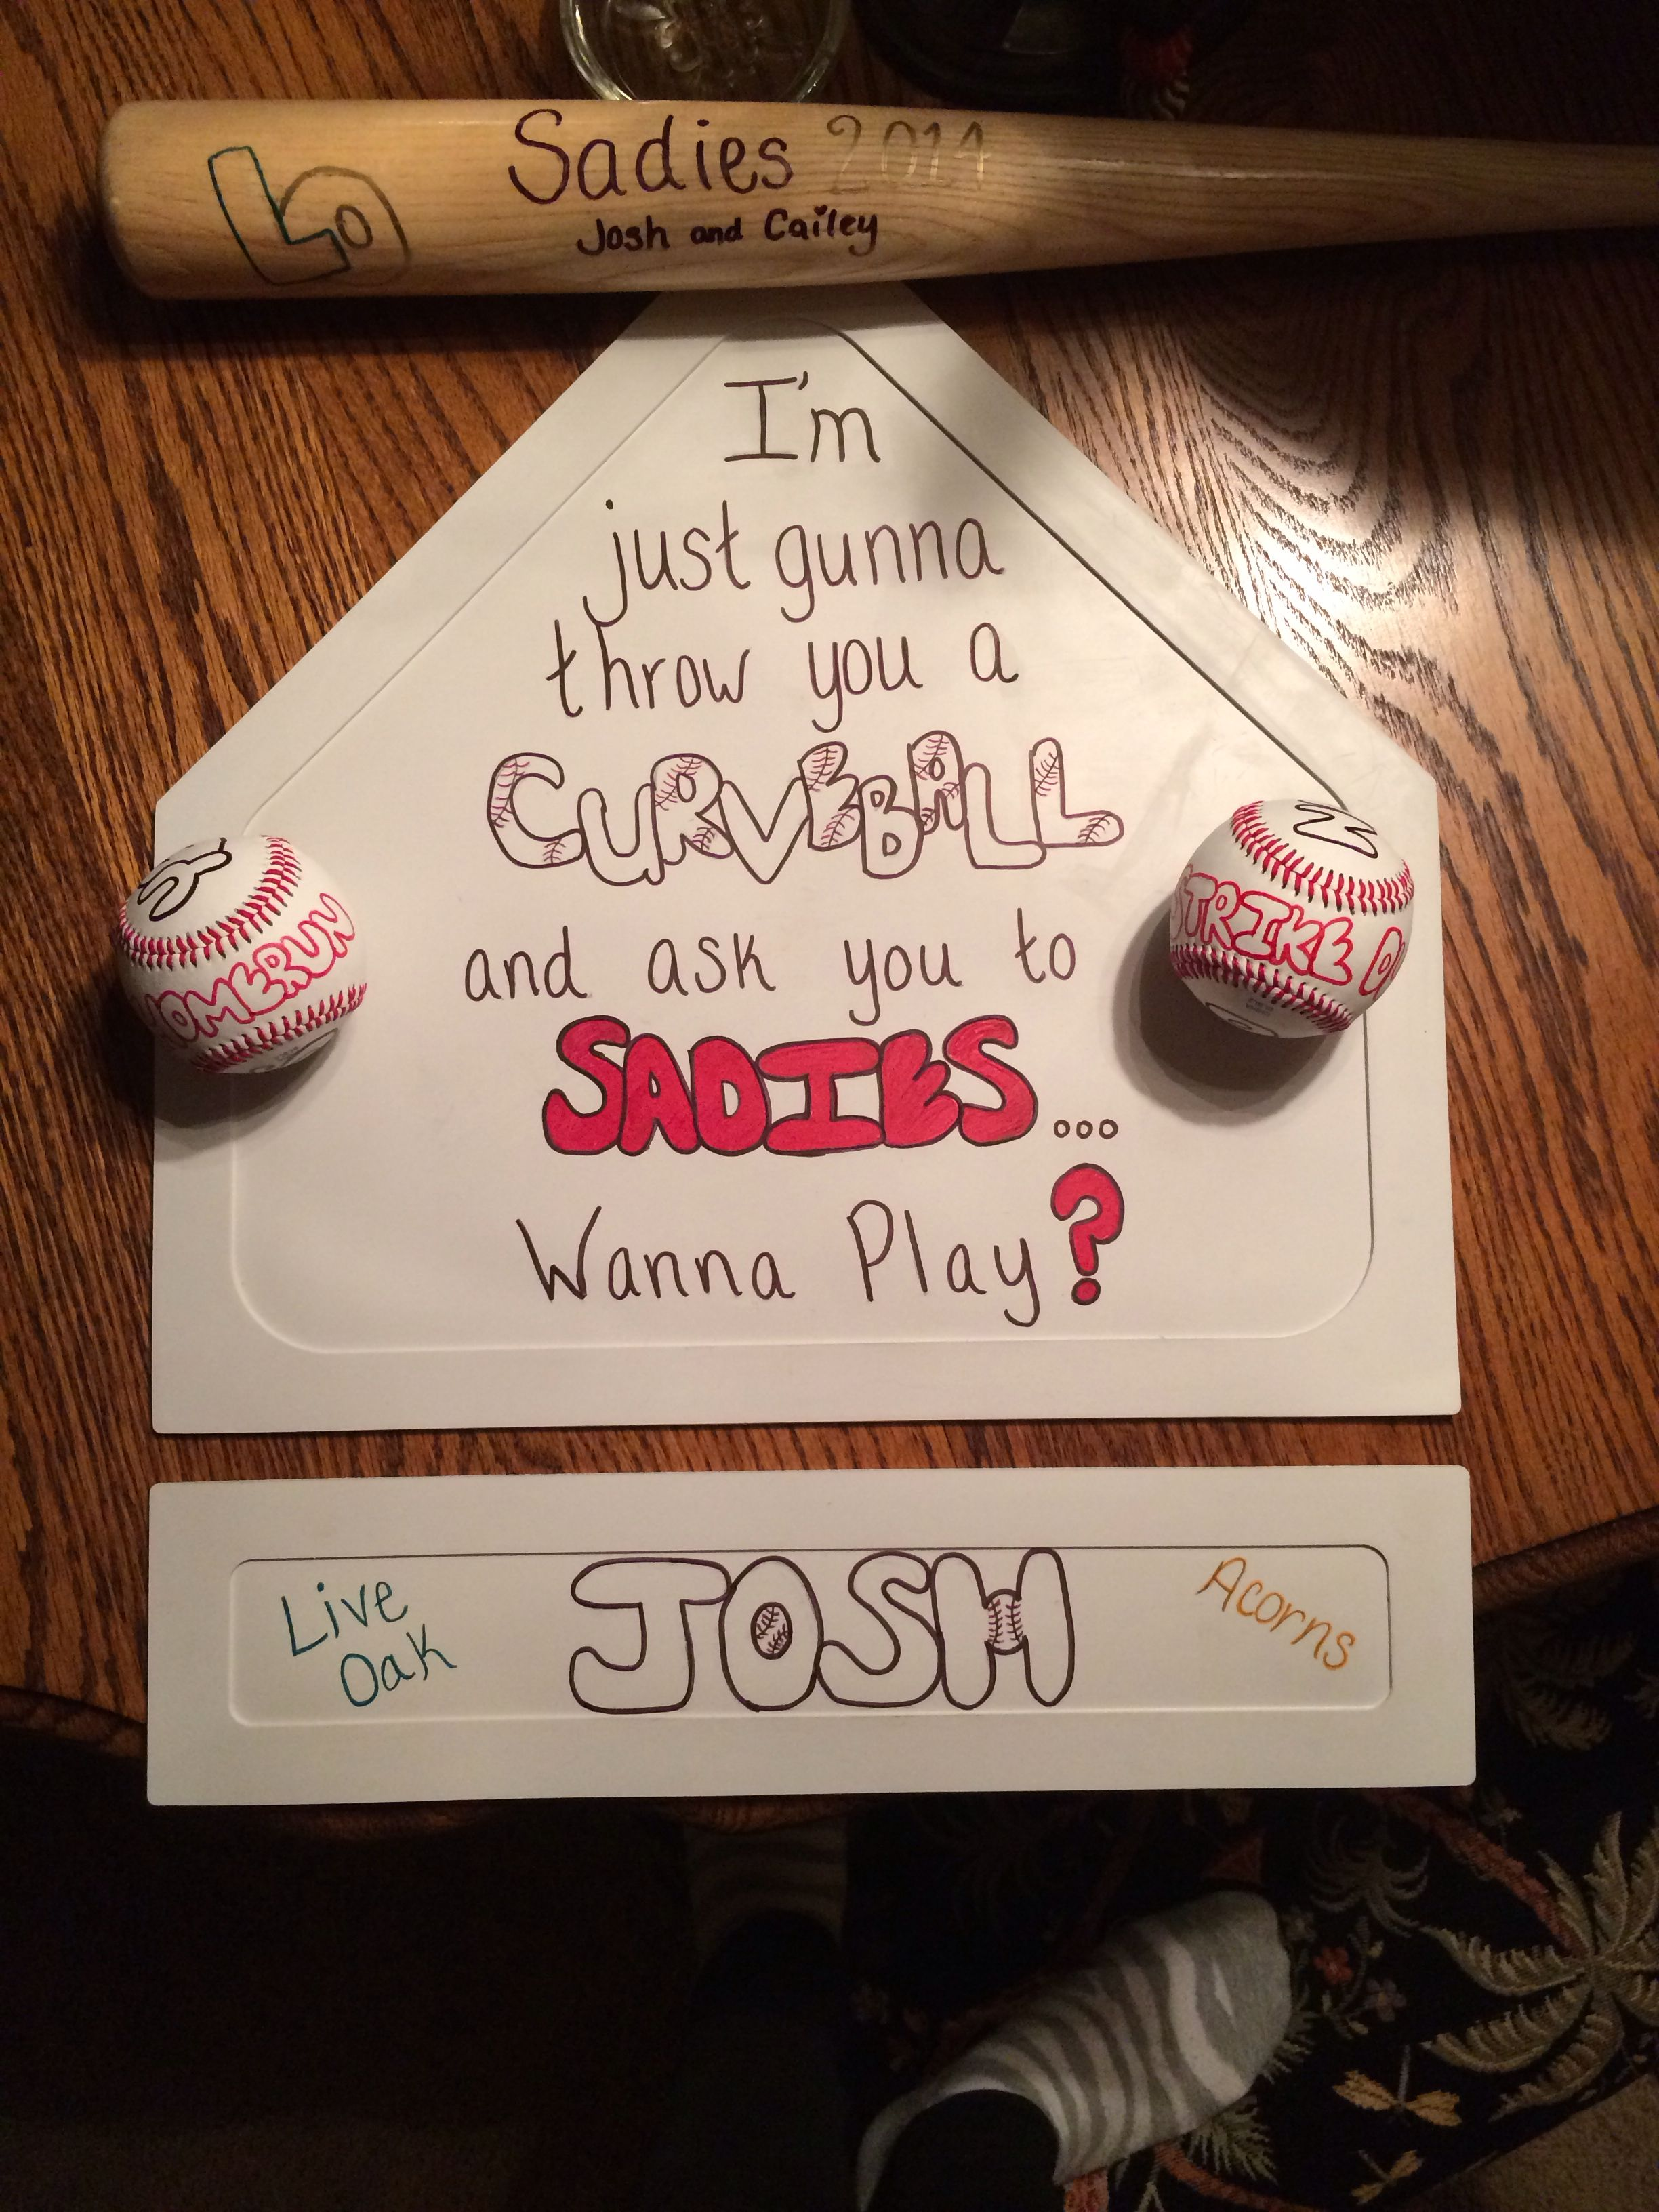 Cute ideas to ask a boy to sadie hawkins - Asking A Guy Who Plays Baseball To Sadies